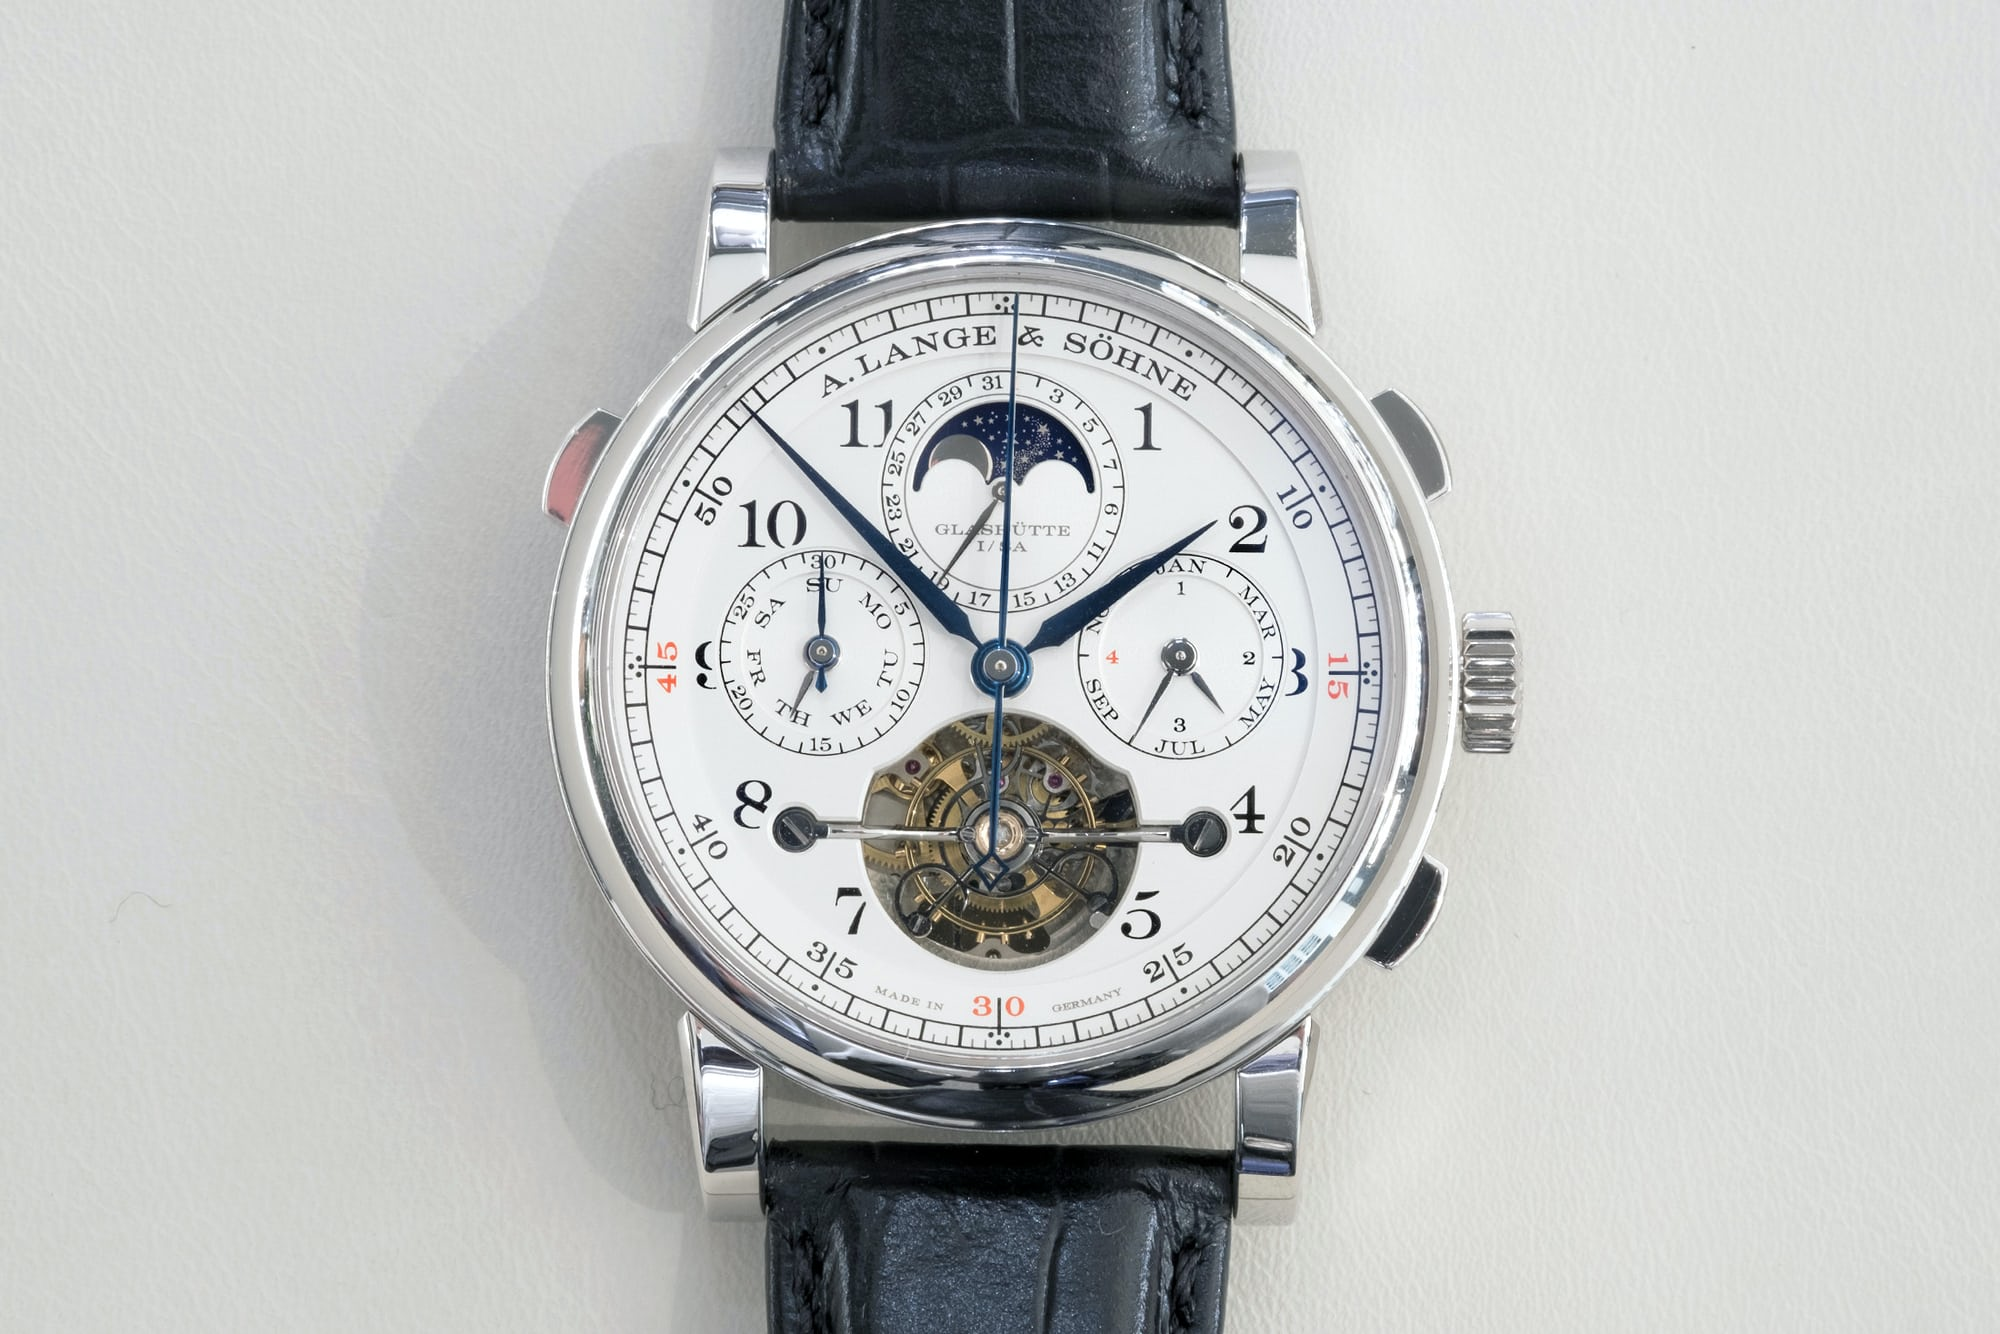 Just Because: All Five A. Lange & Söhne 'Pour le Mérite' Watches In The Same Place, At The Same Time Just Because: All Five A. Lange & Söhne 'Pour le Mérite' Watches In The Same Place, At The Same Time plm 10